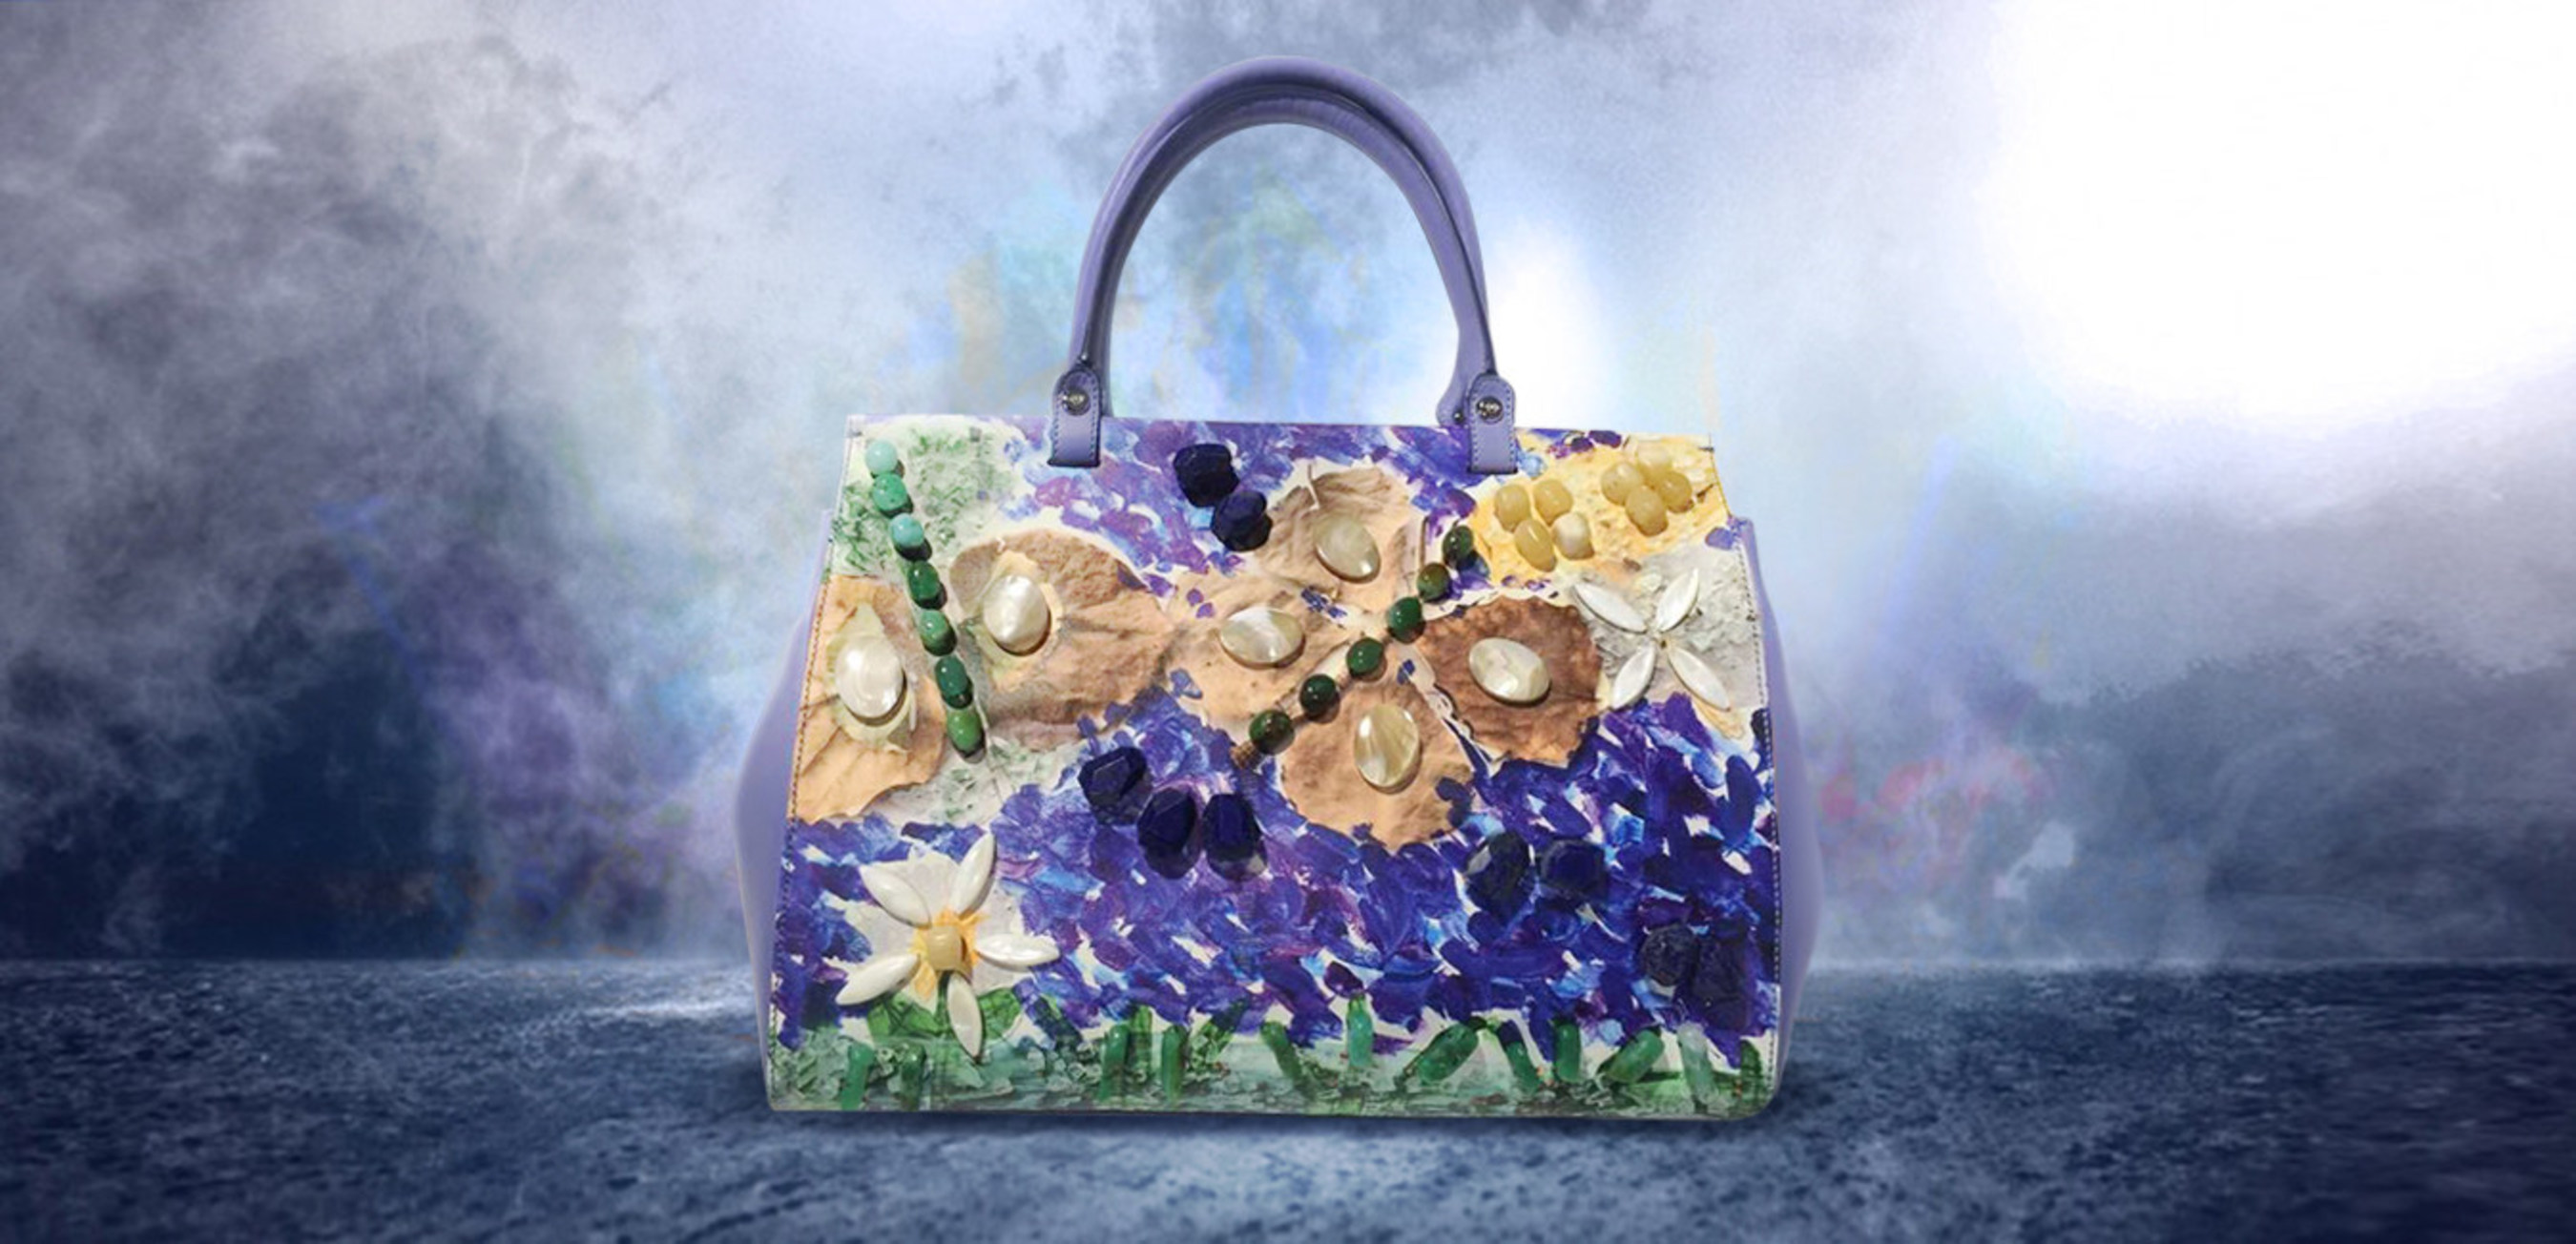 LWW Presents a Limited Collection Handbag